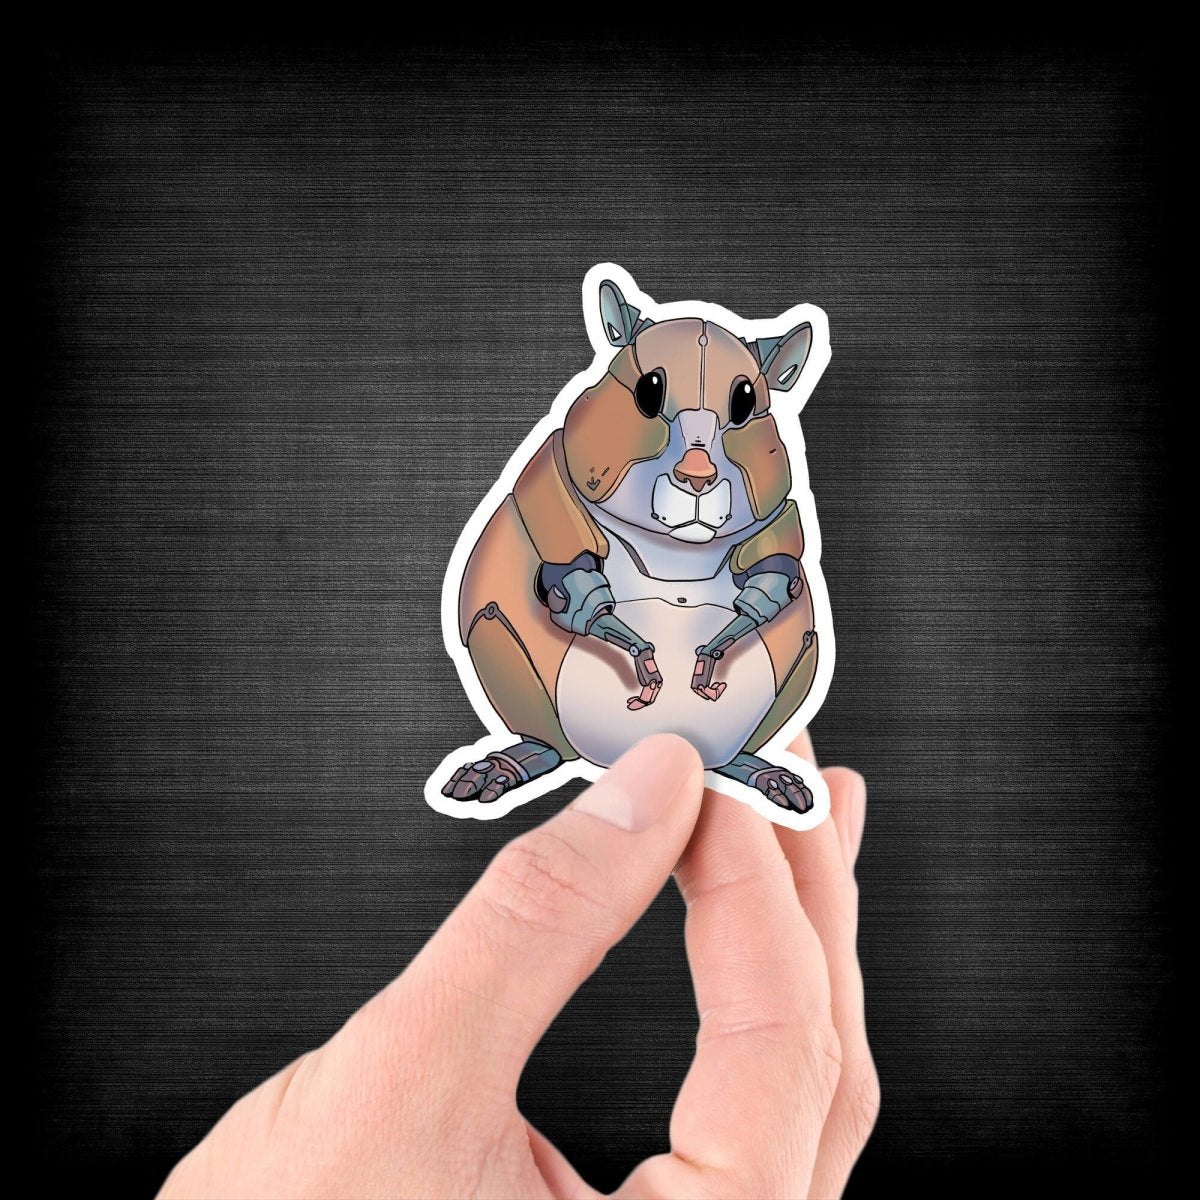 Hamster Robot - Vinyl Sticker - Dan Pearce Sticker Shop